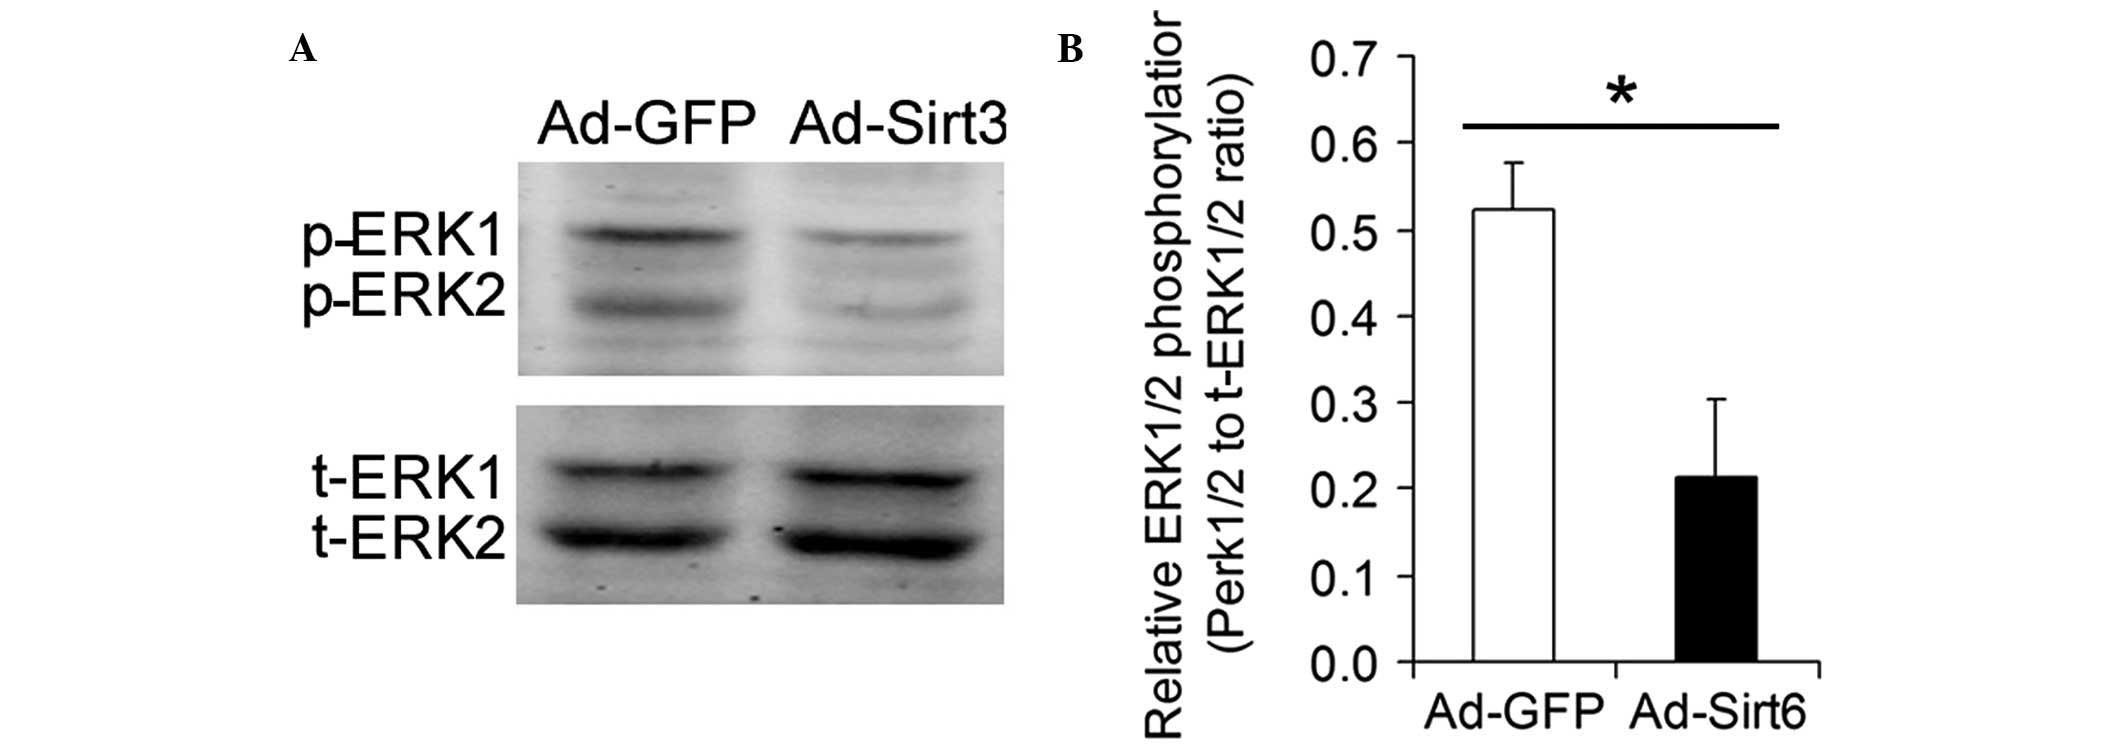 Sirt6 suppresses hepatocellular carcinoma cell growth via inhibiting the extracellular signal‑regulated kinase signaling pathway